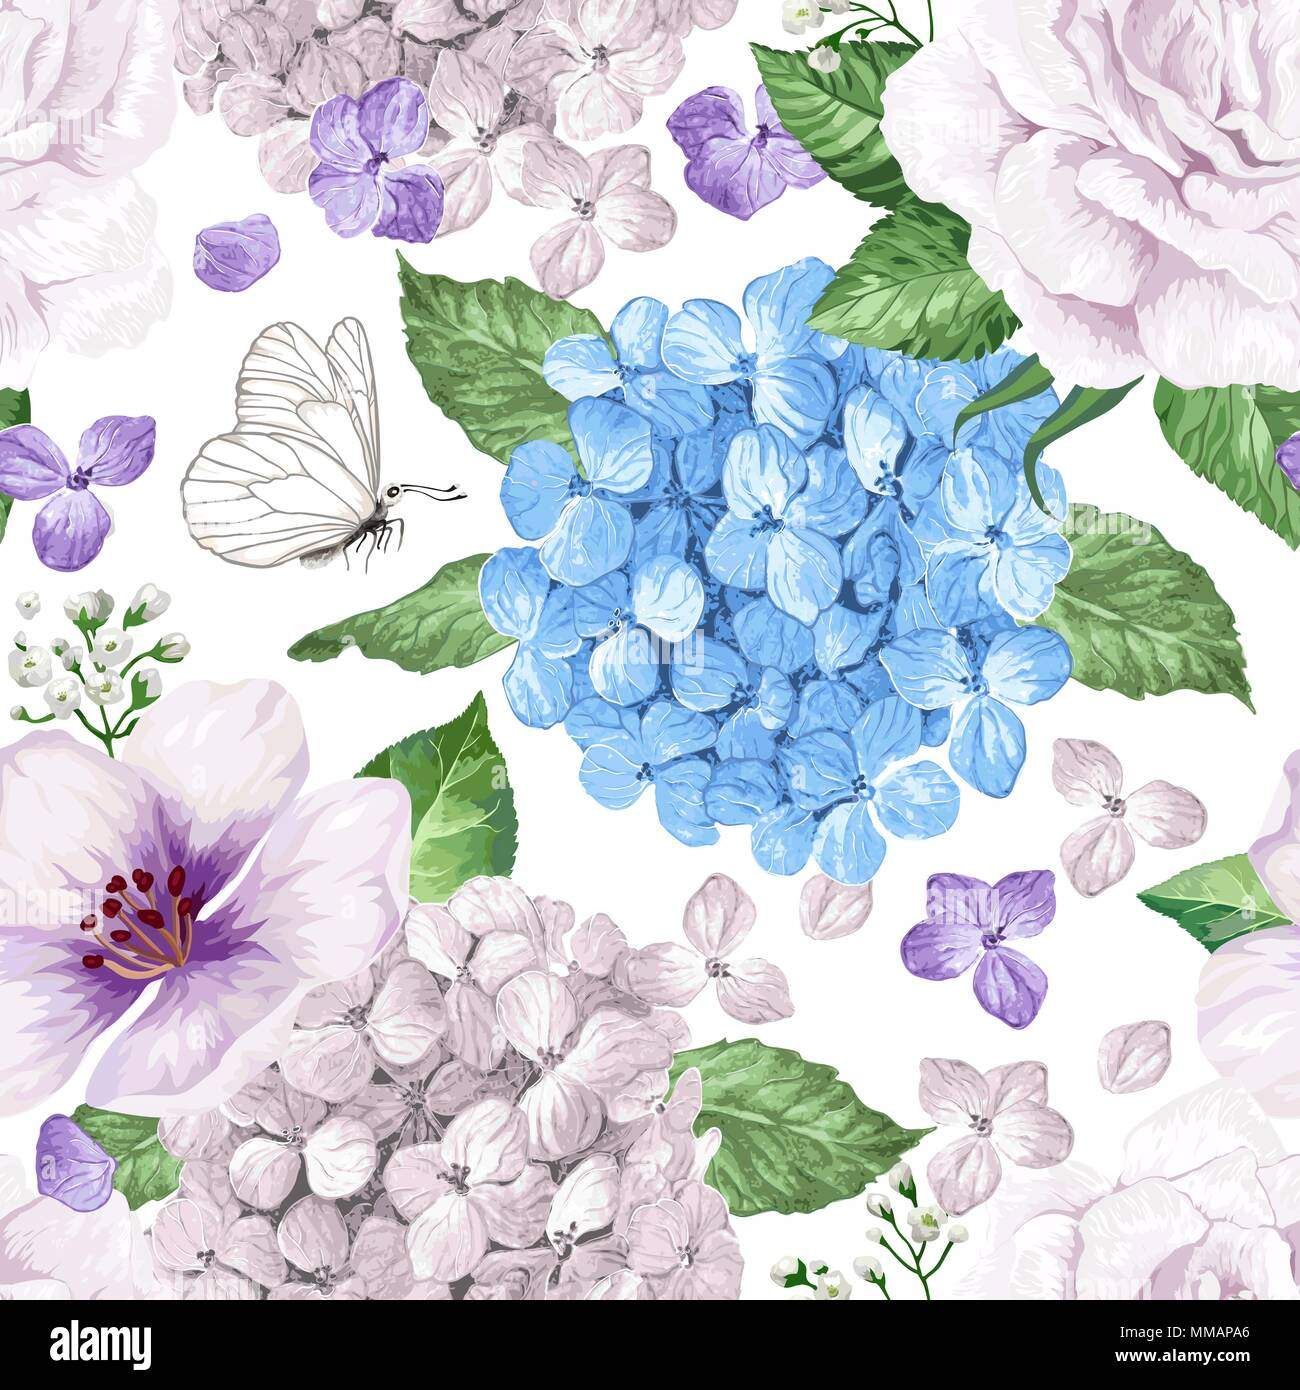 Apple Tree Flowers Hydrangea Flowerspetals And Leaves In